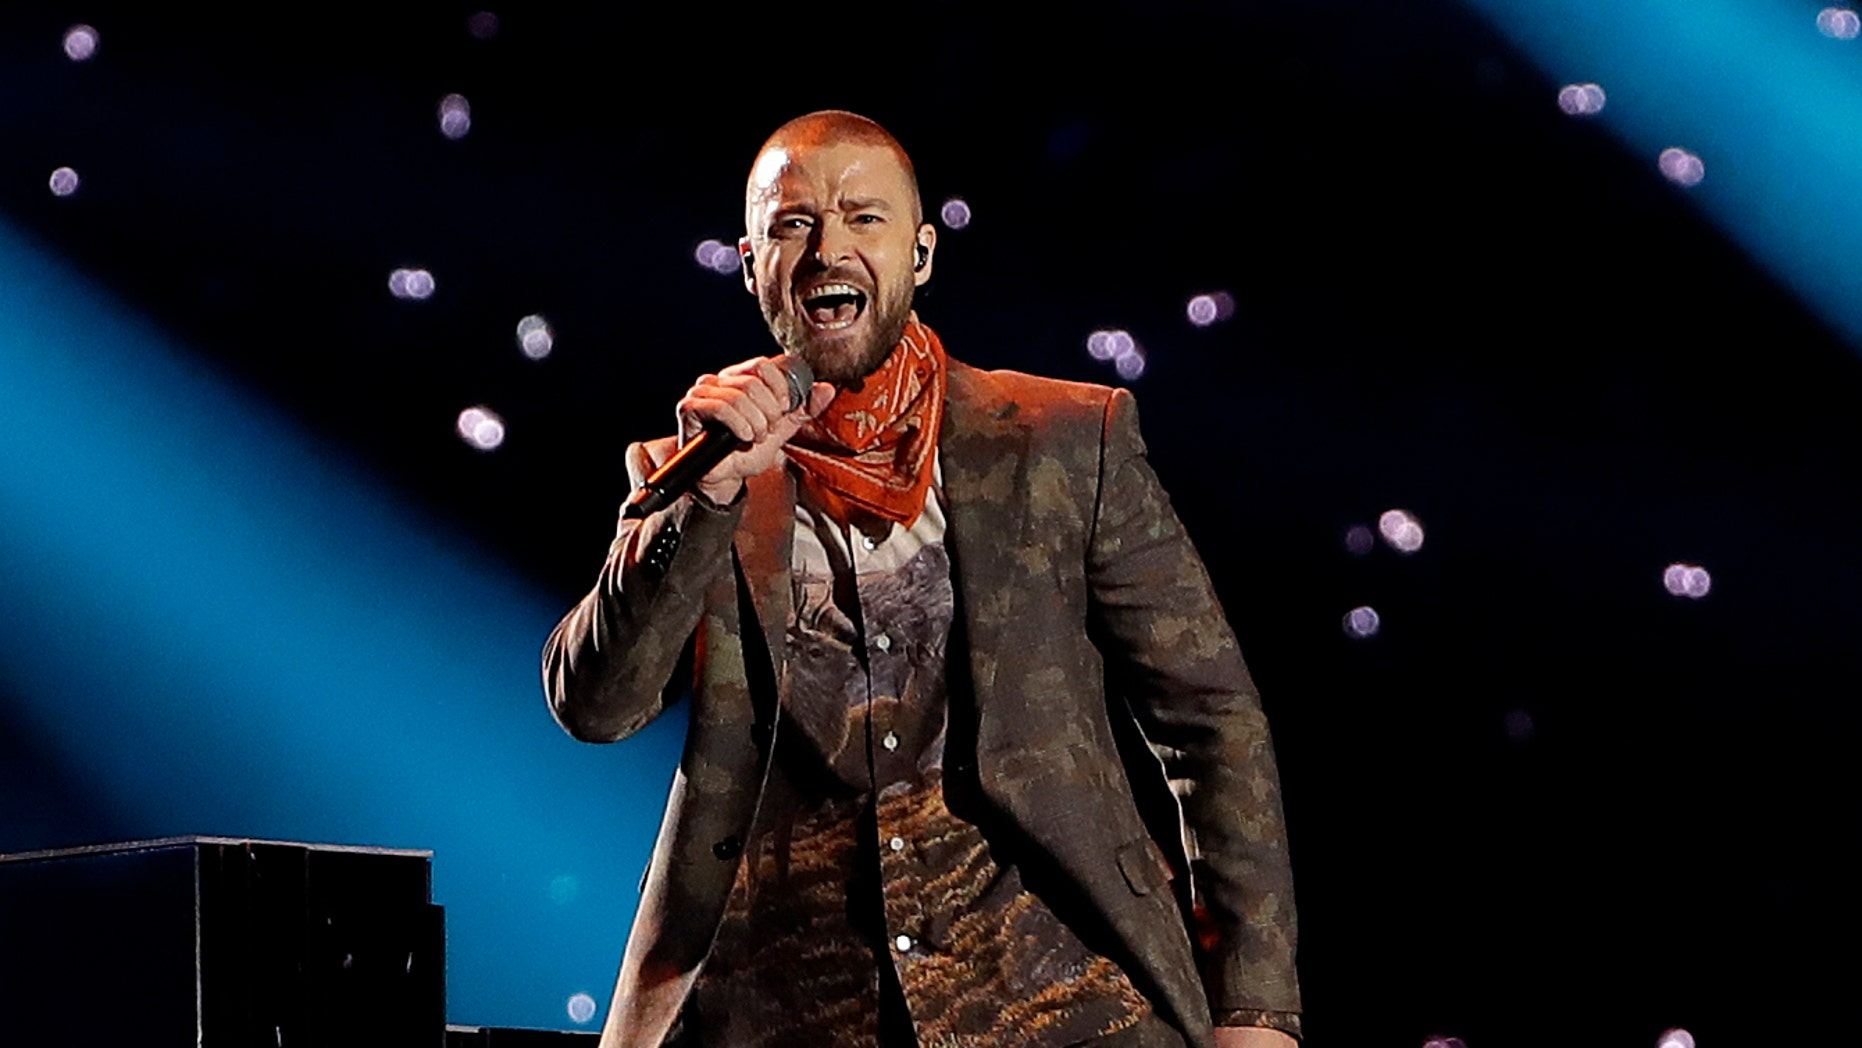 """Justin Timberlake says he is postponing his Wednesday night concert in New York City because his vocal chords are """"severely bruised."""""""